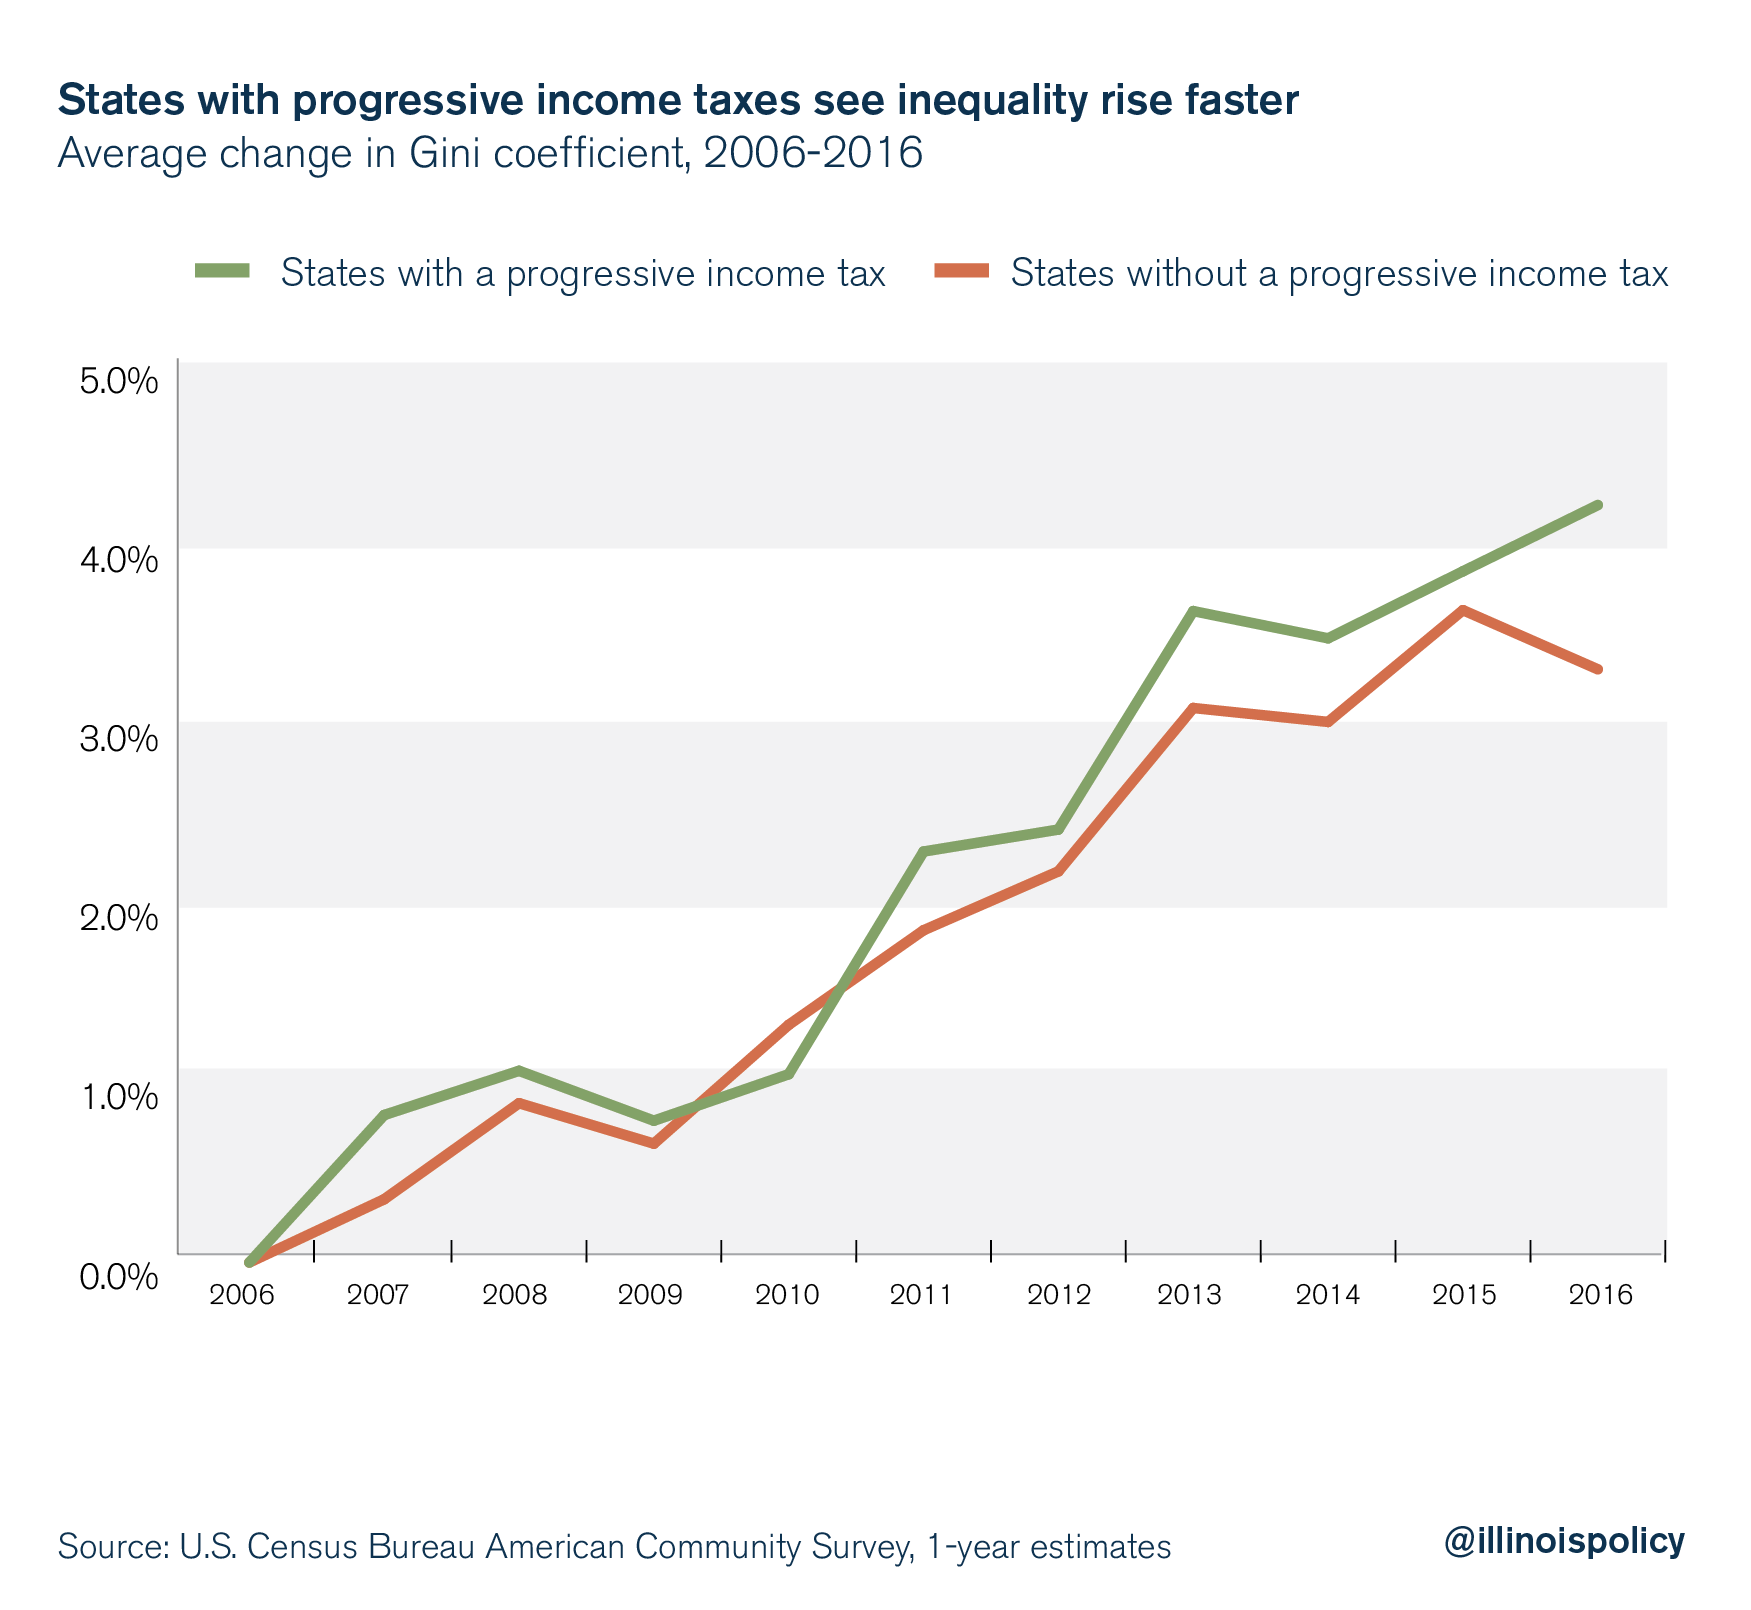 States with progressive income taxes see inequality rise faster